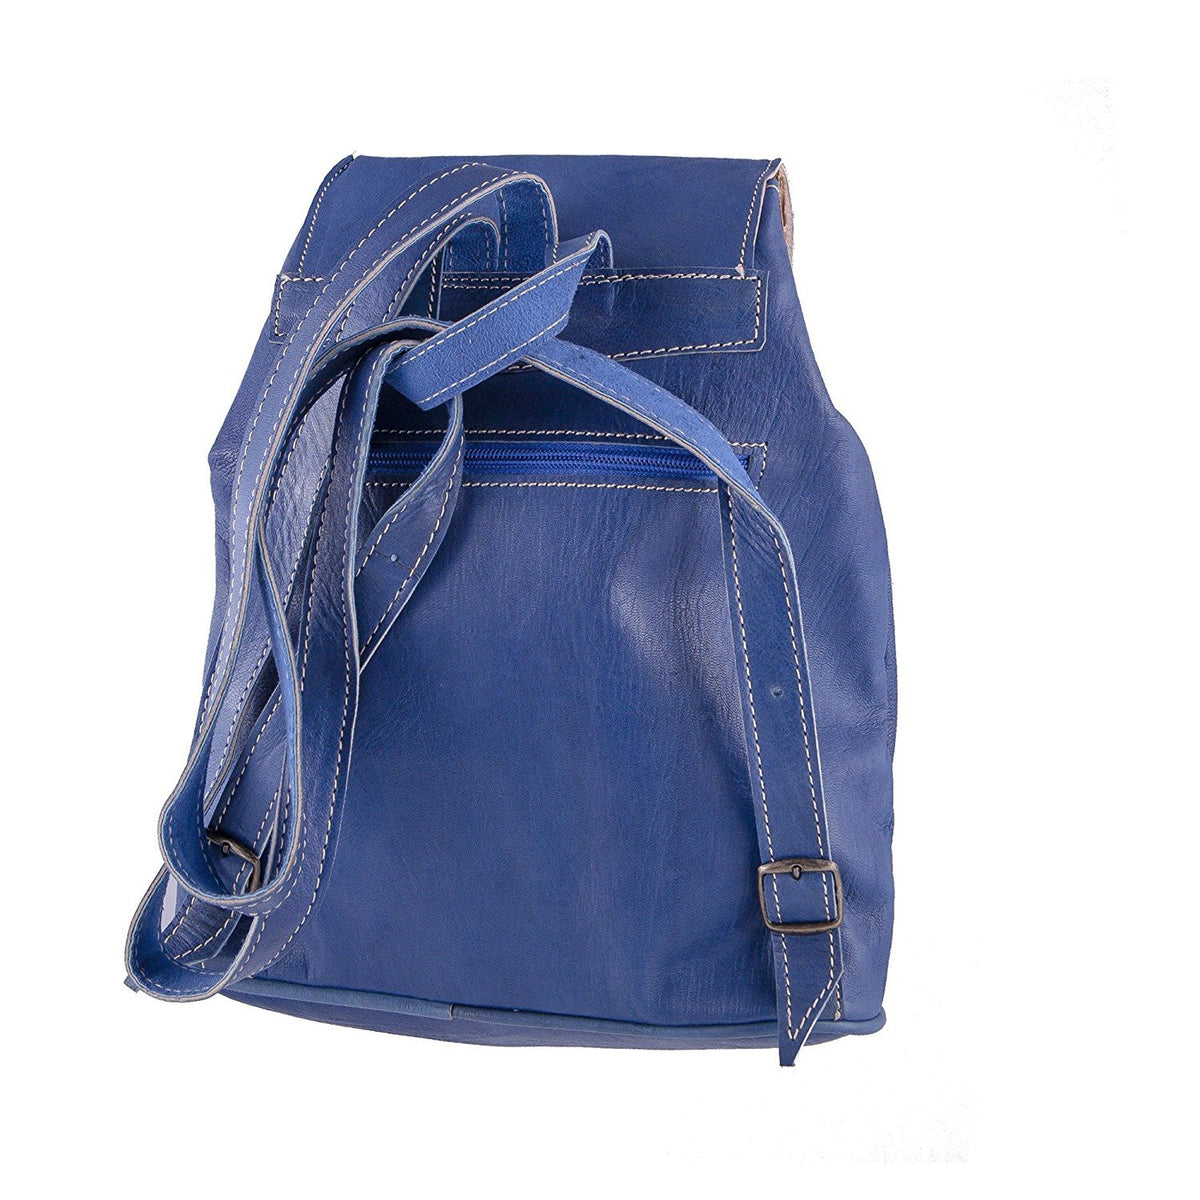 Vintage style women's leather backpack - Handmade - Blue